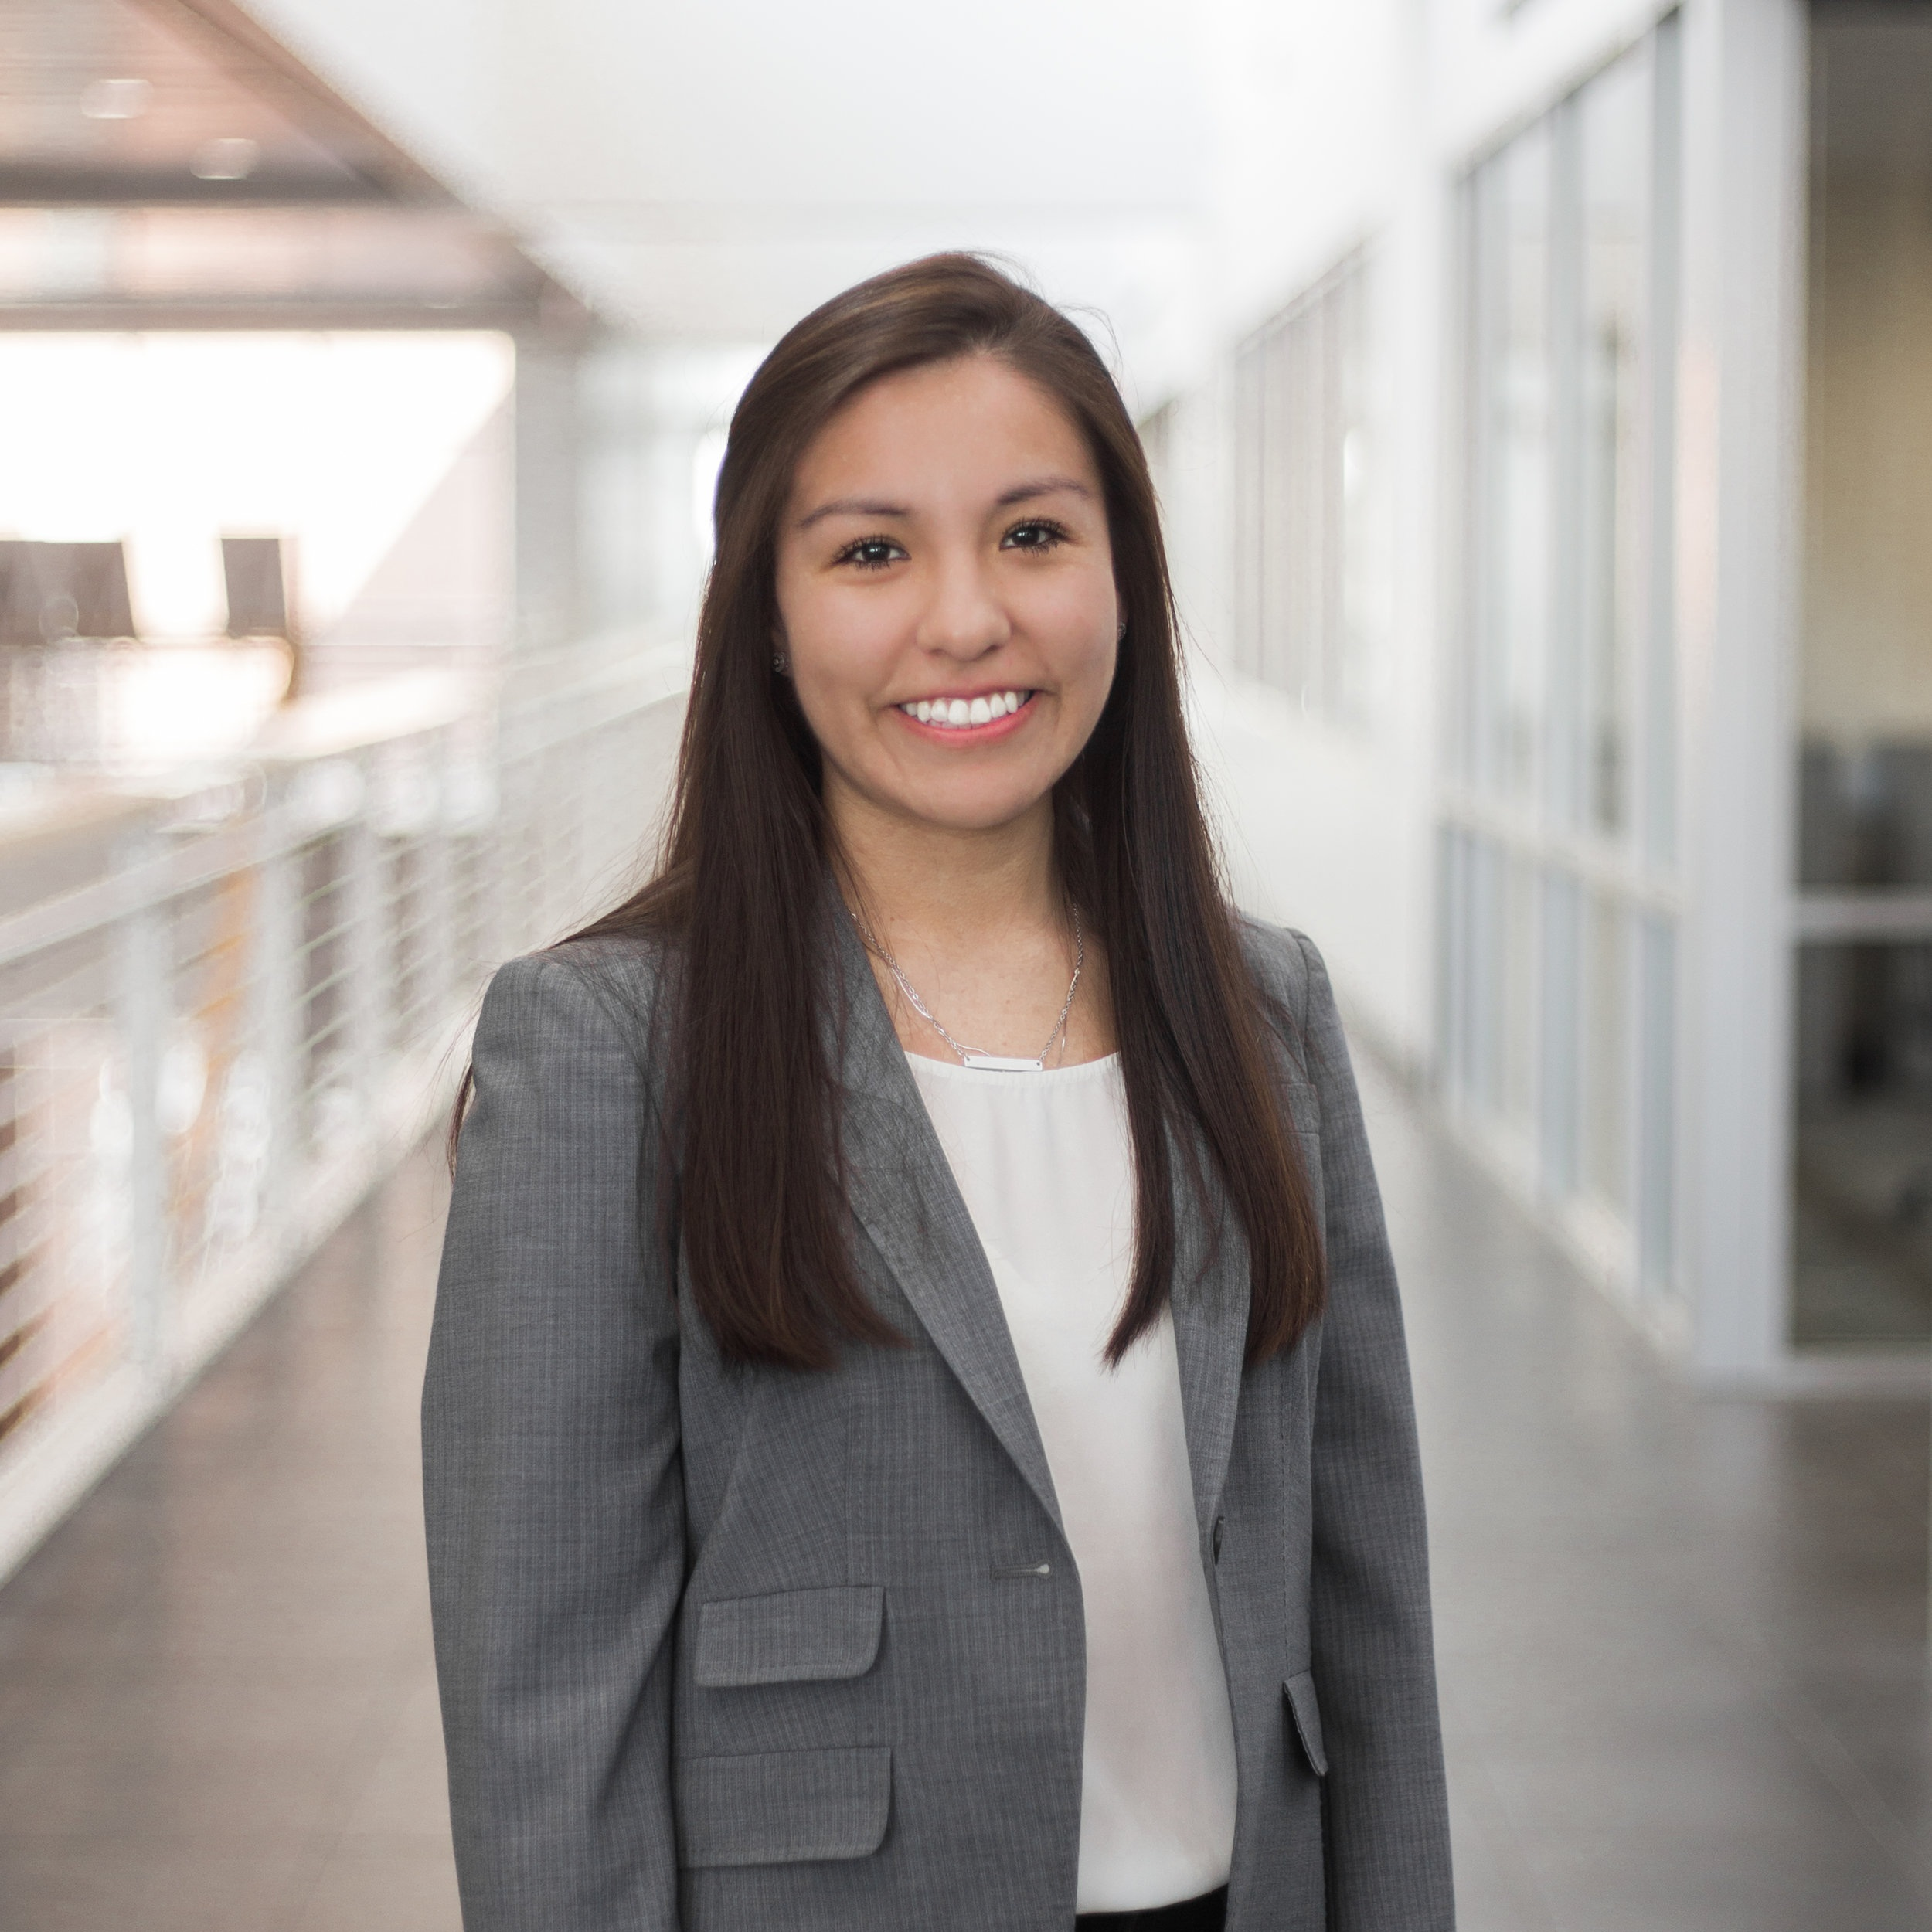 Paola Mita - AnalystBSB '20, MIS and Finance